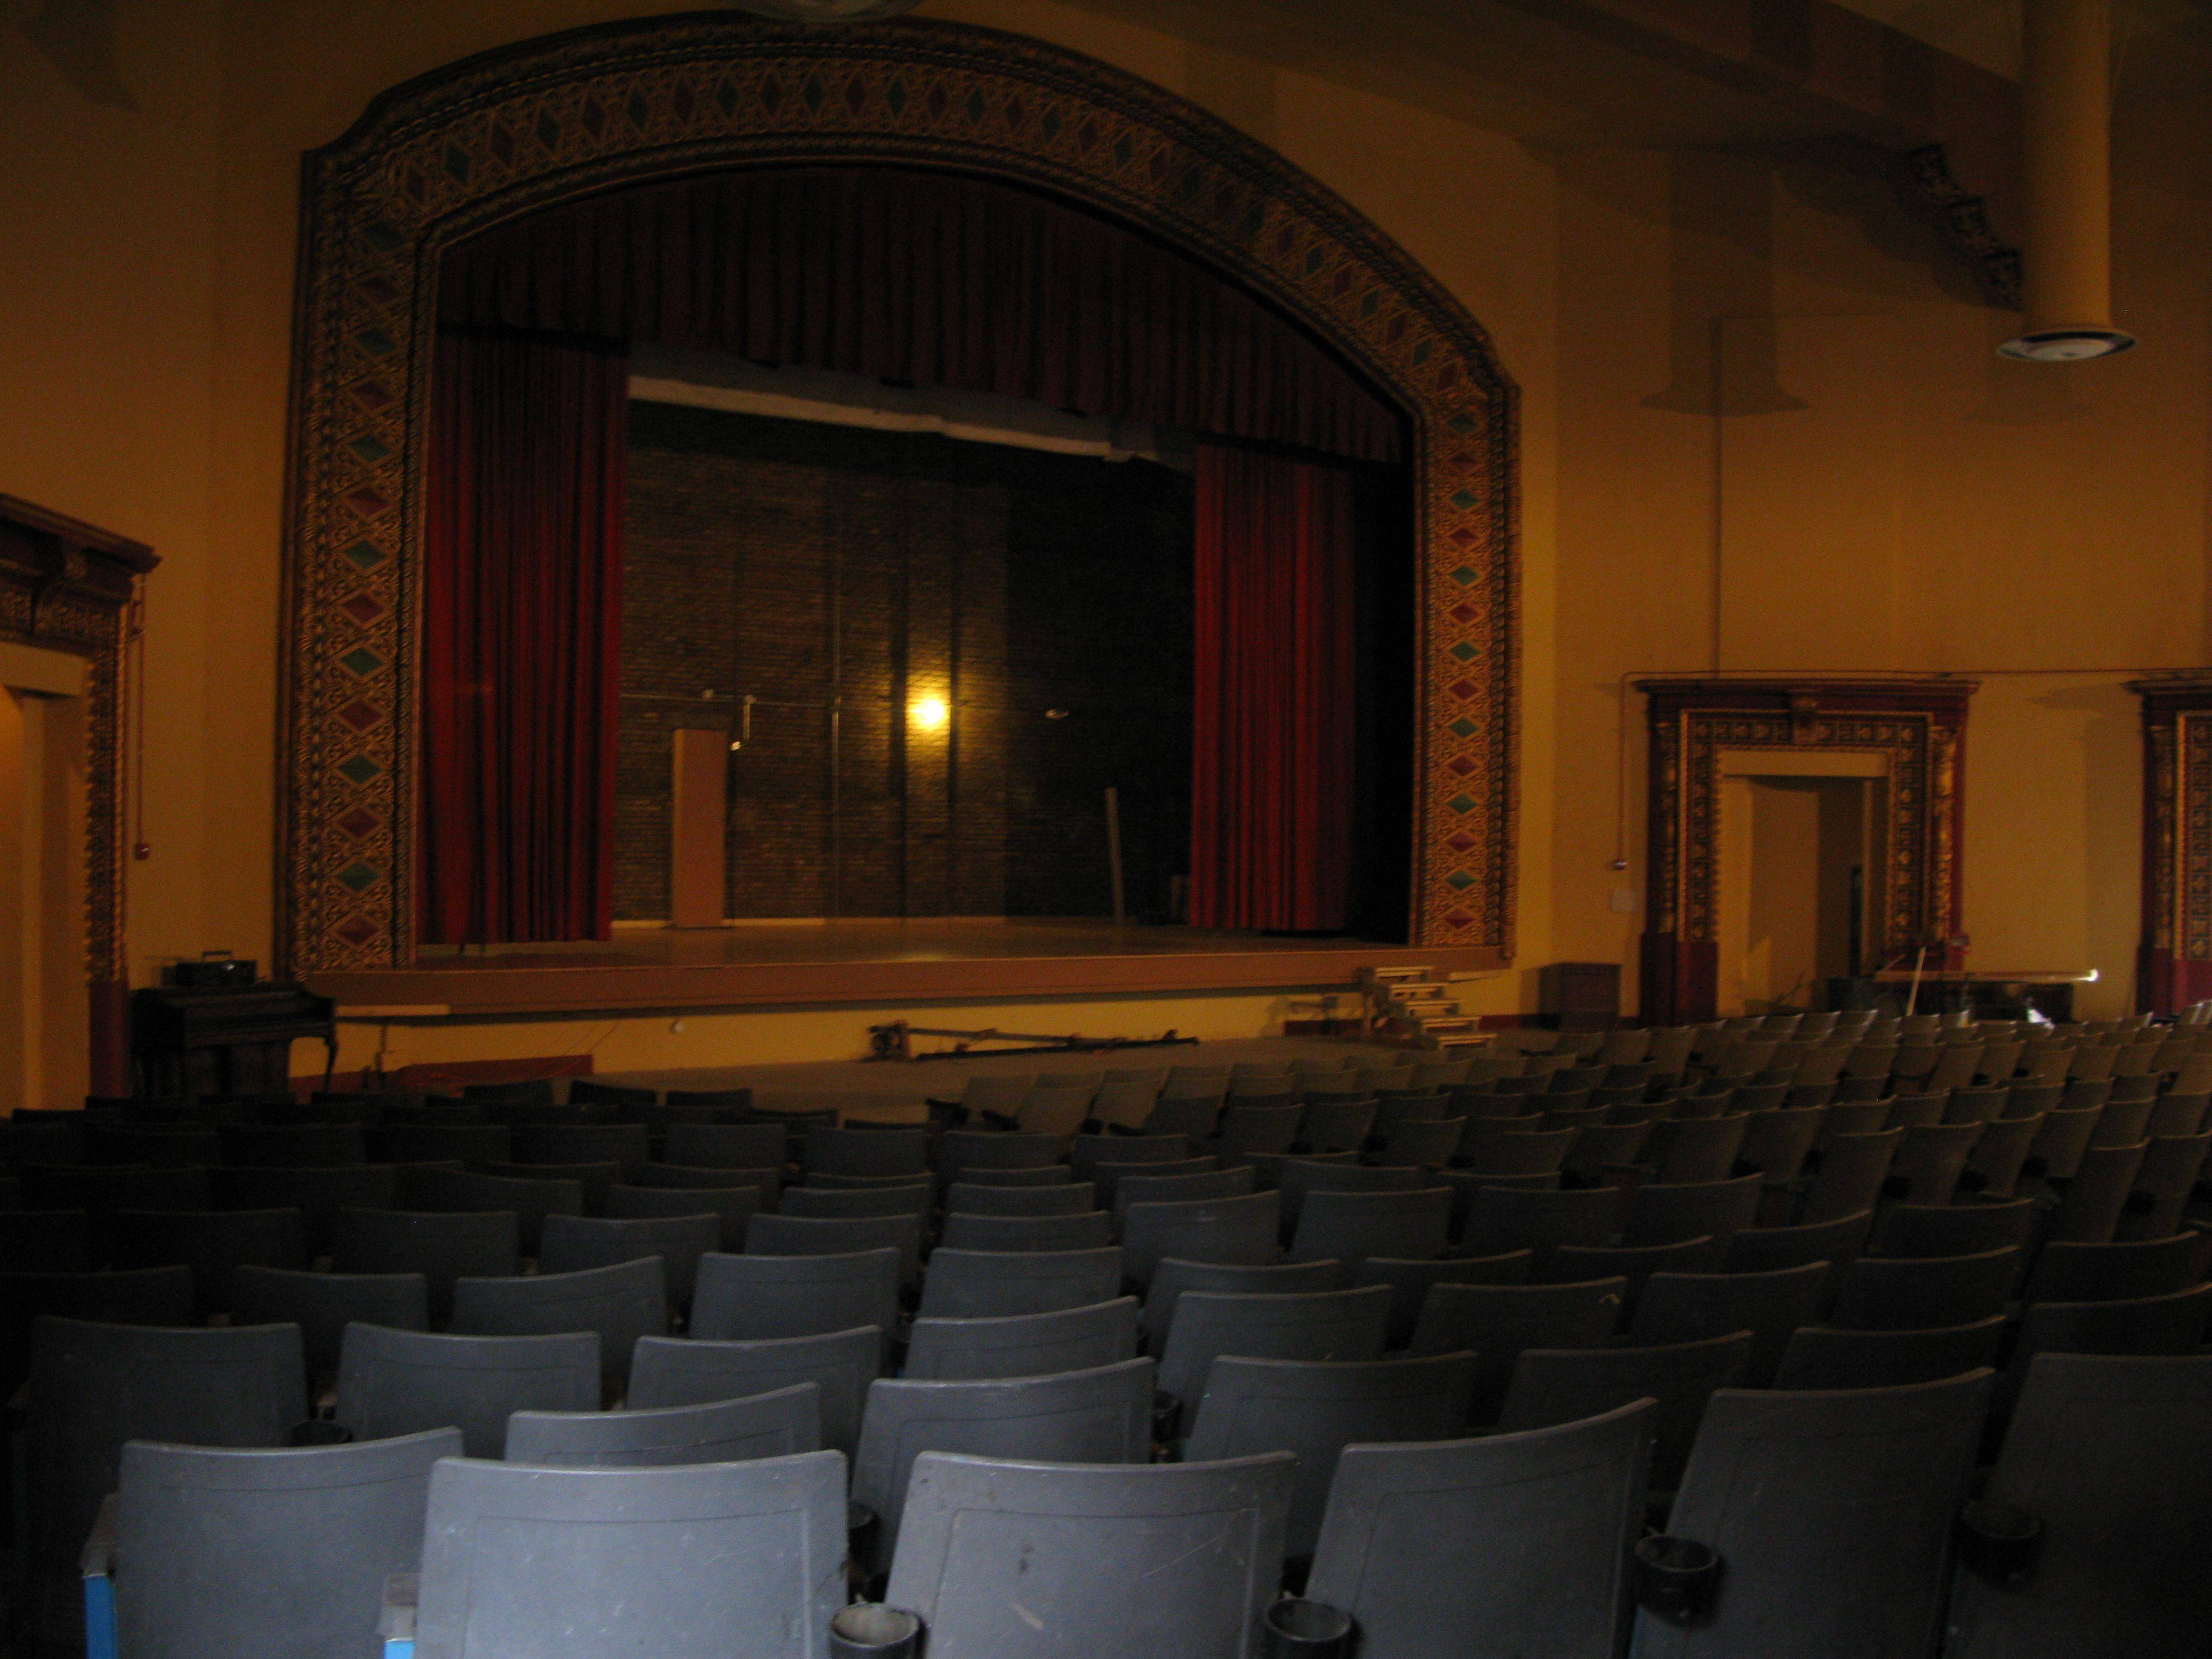 After more than a year of renovations and two years of being in the dark, the Des Plaines Theater is scheduled to reopen Nov. 11 and begin showing live performances, as well as Bollywood and Hollywood movies down the road.